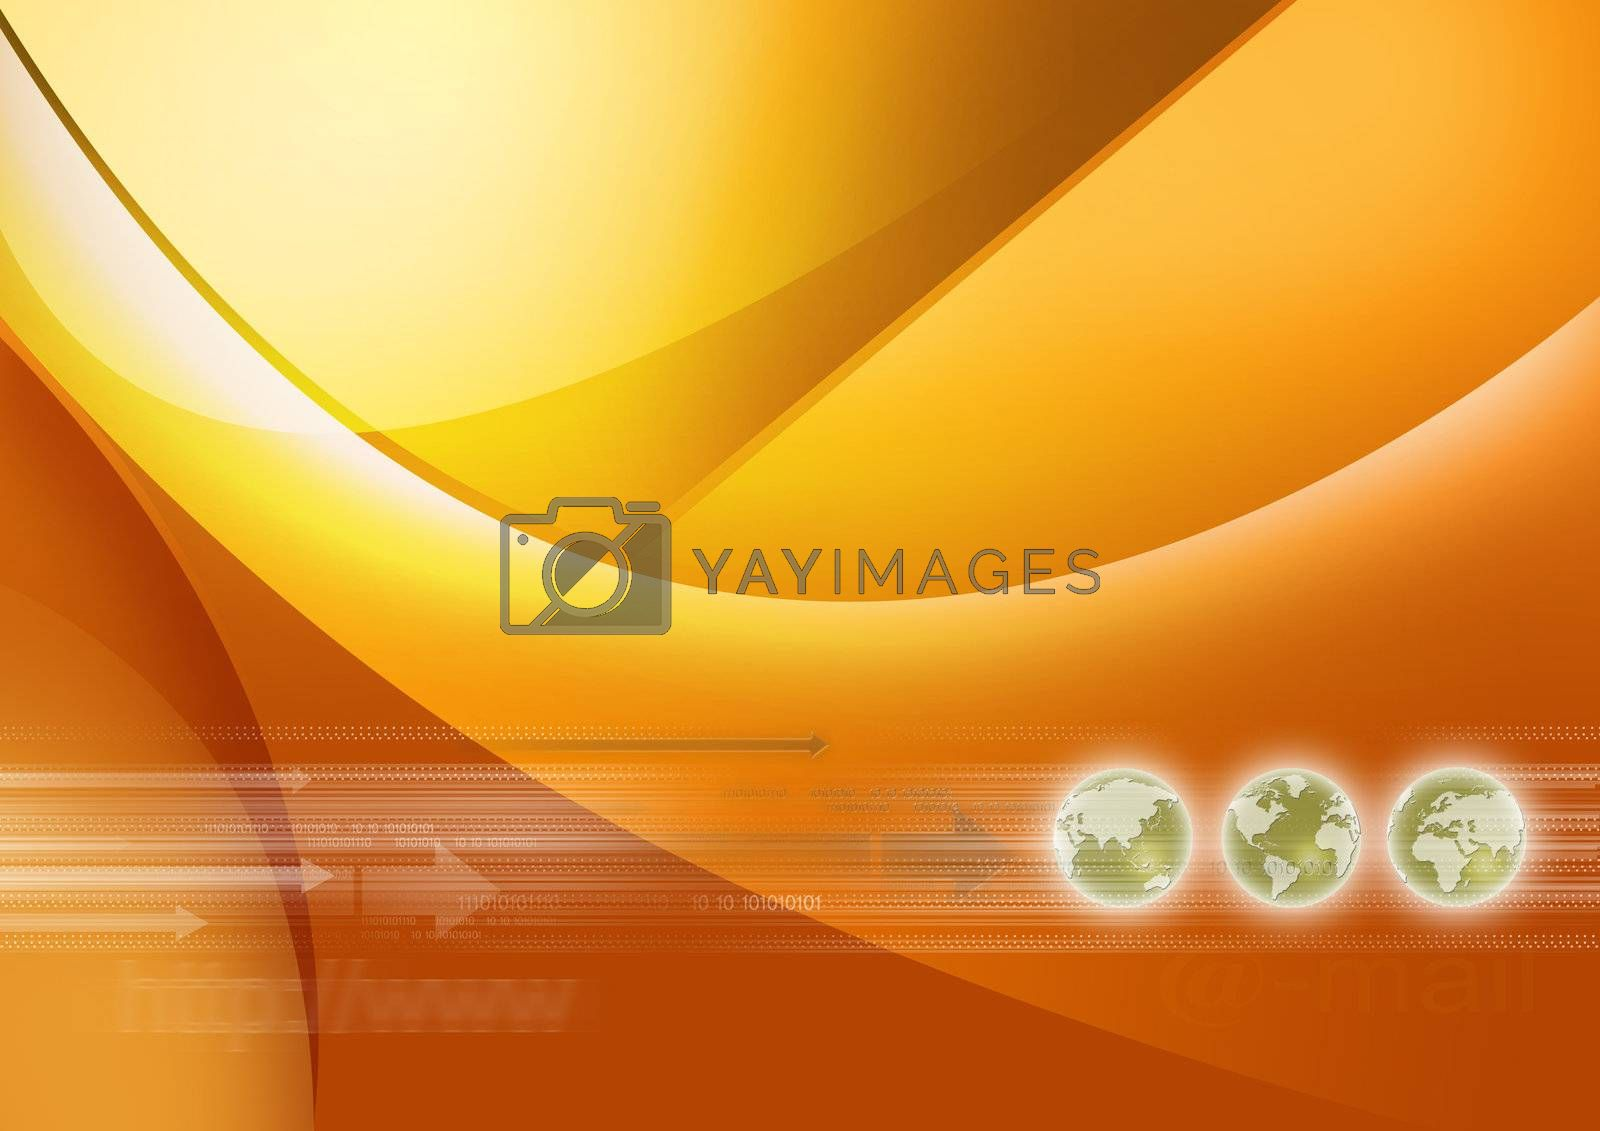 Background can use the Internet, print advertising and design